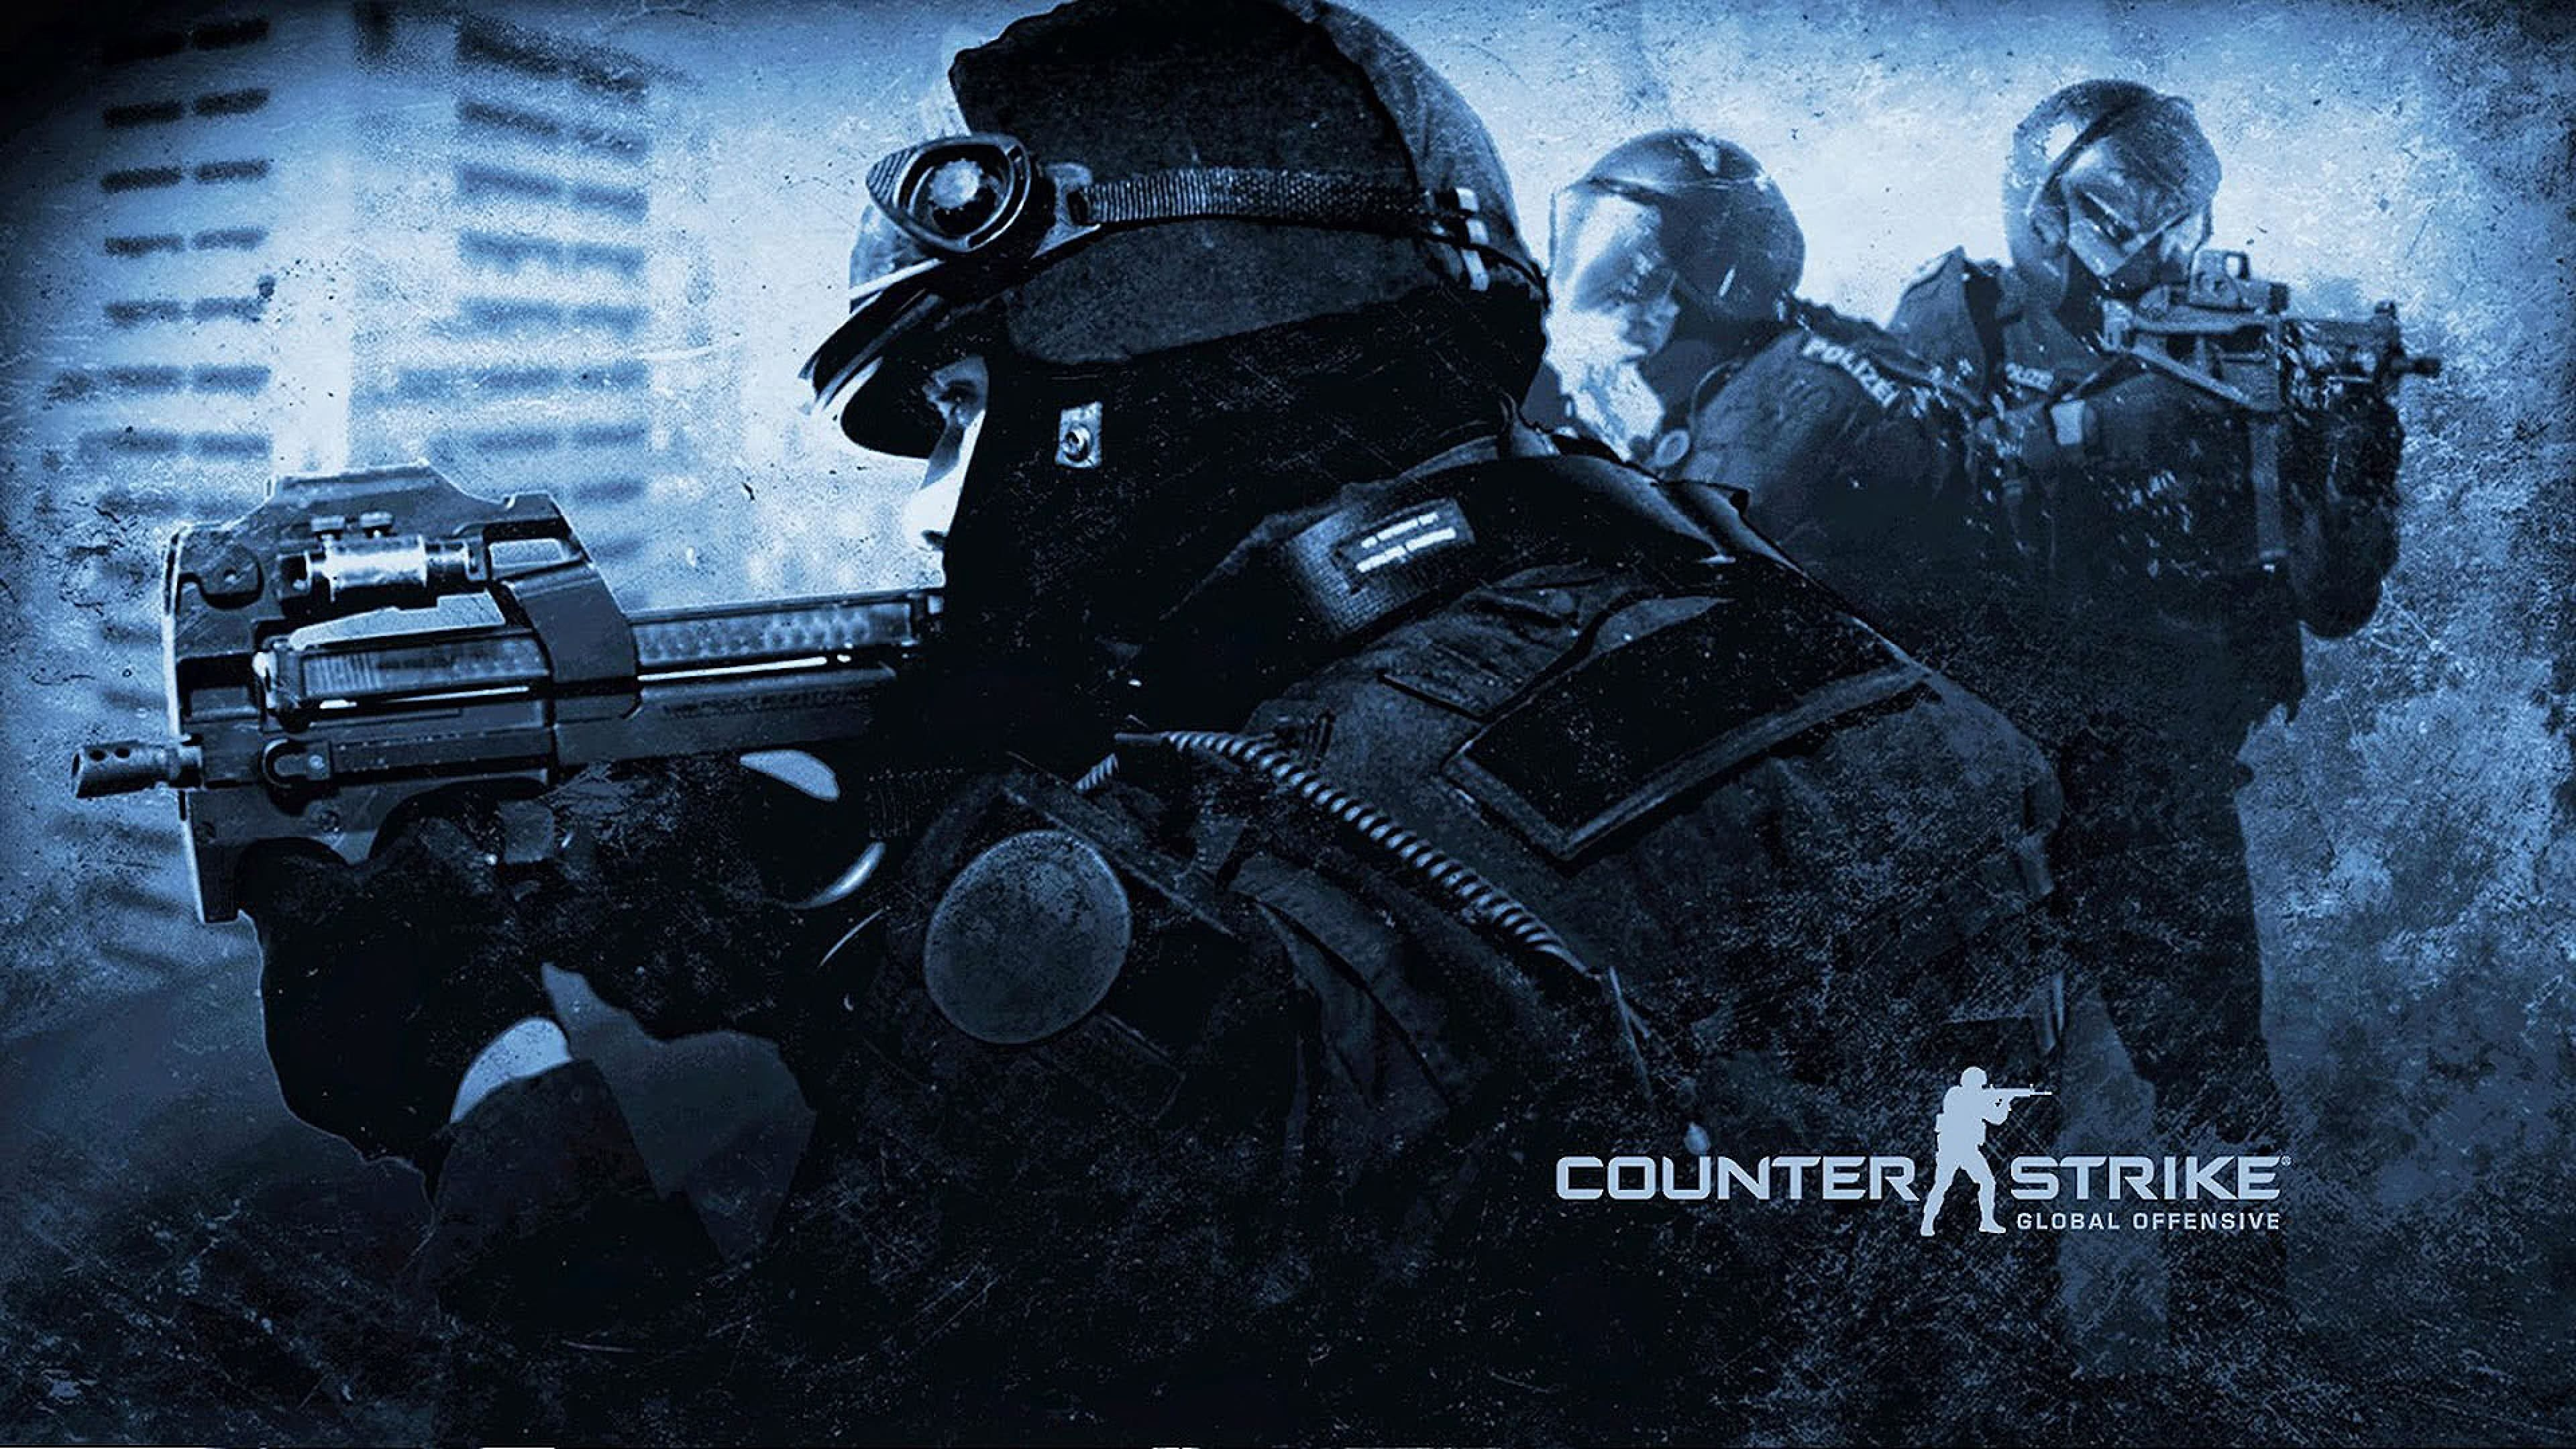 10 New Counter Strike Wall Paper FULL HD 1920×1080 For PC Background